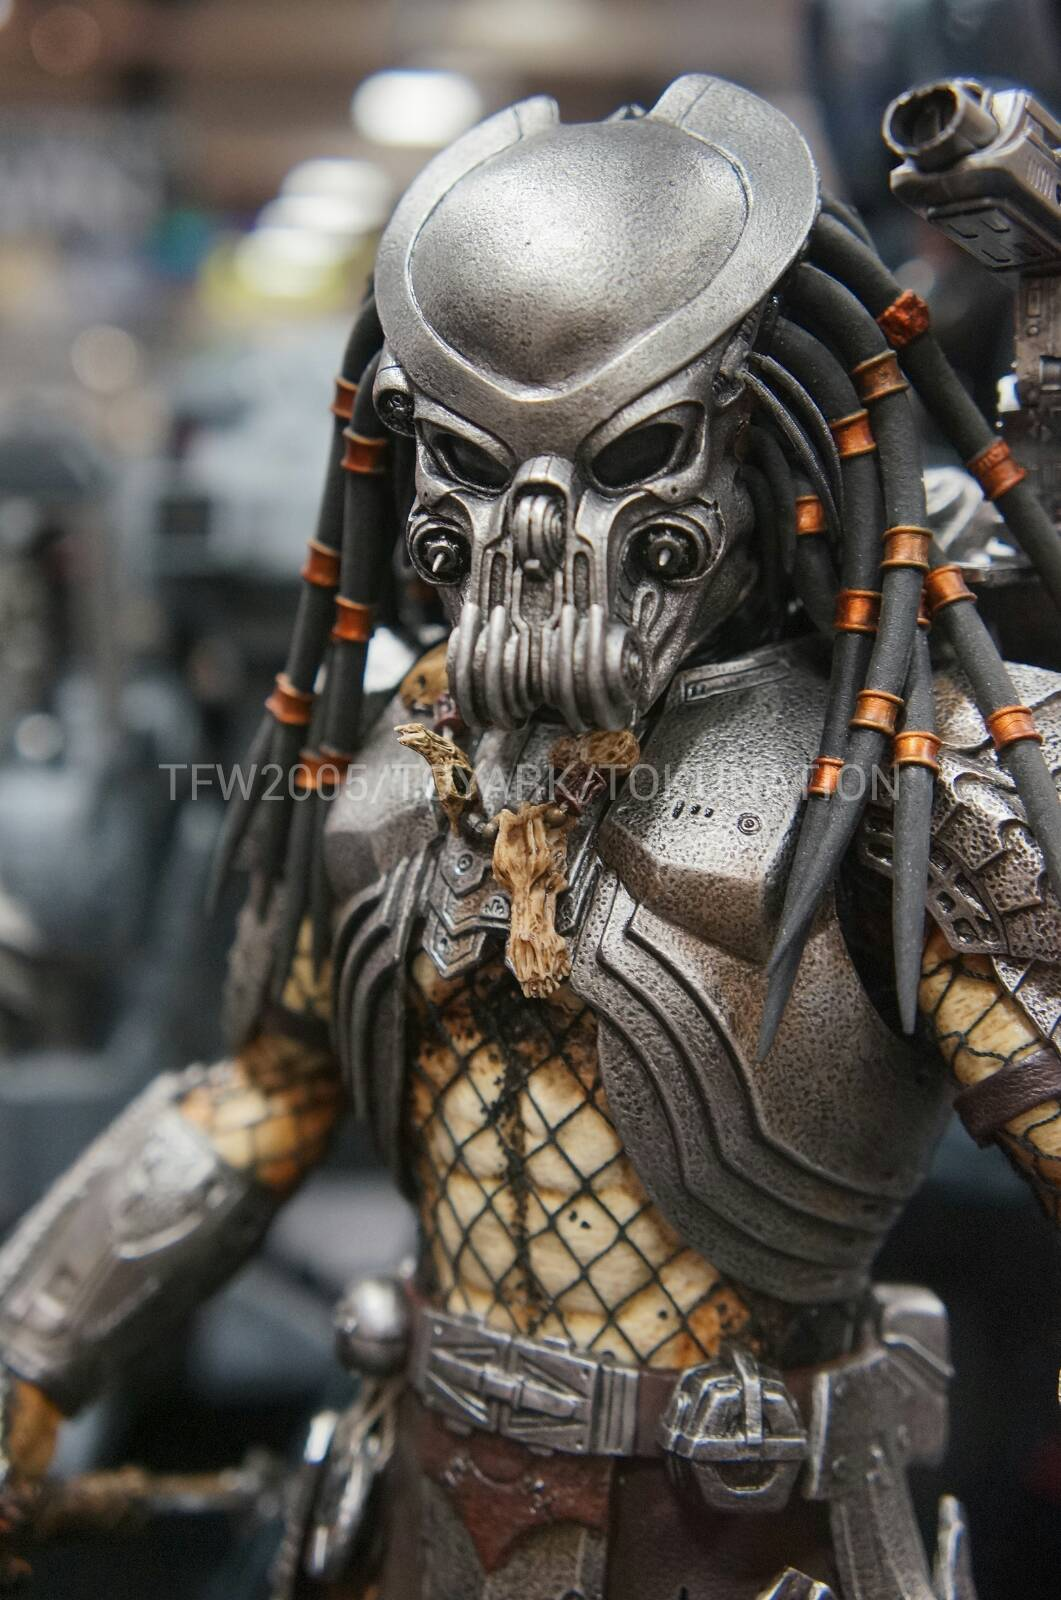 Product announcement hot toys mms avp celtic predator ver 2 hot toys mms avp celtic predator ver 2 voltagebd Image collections